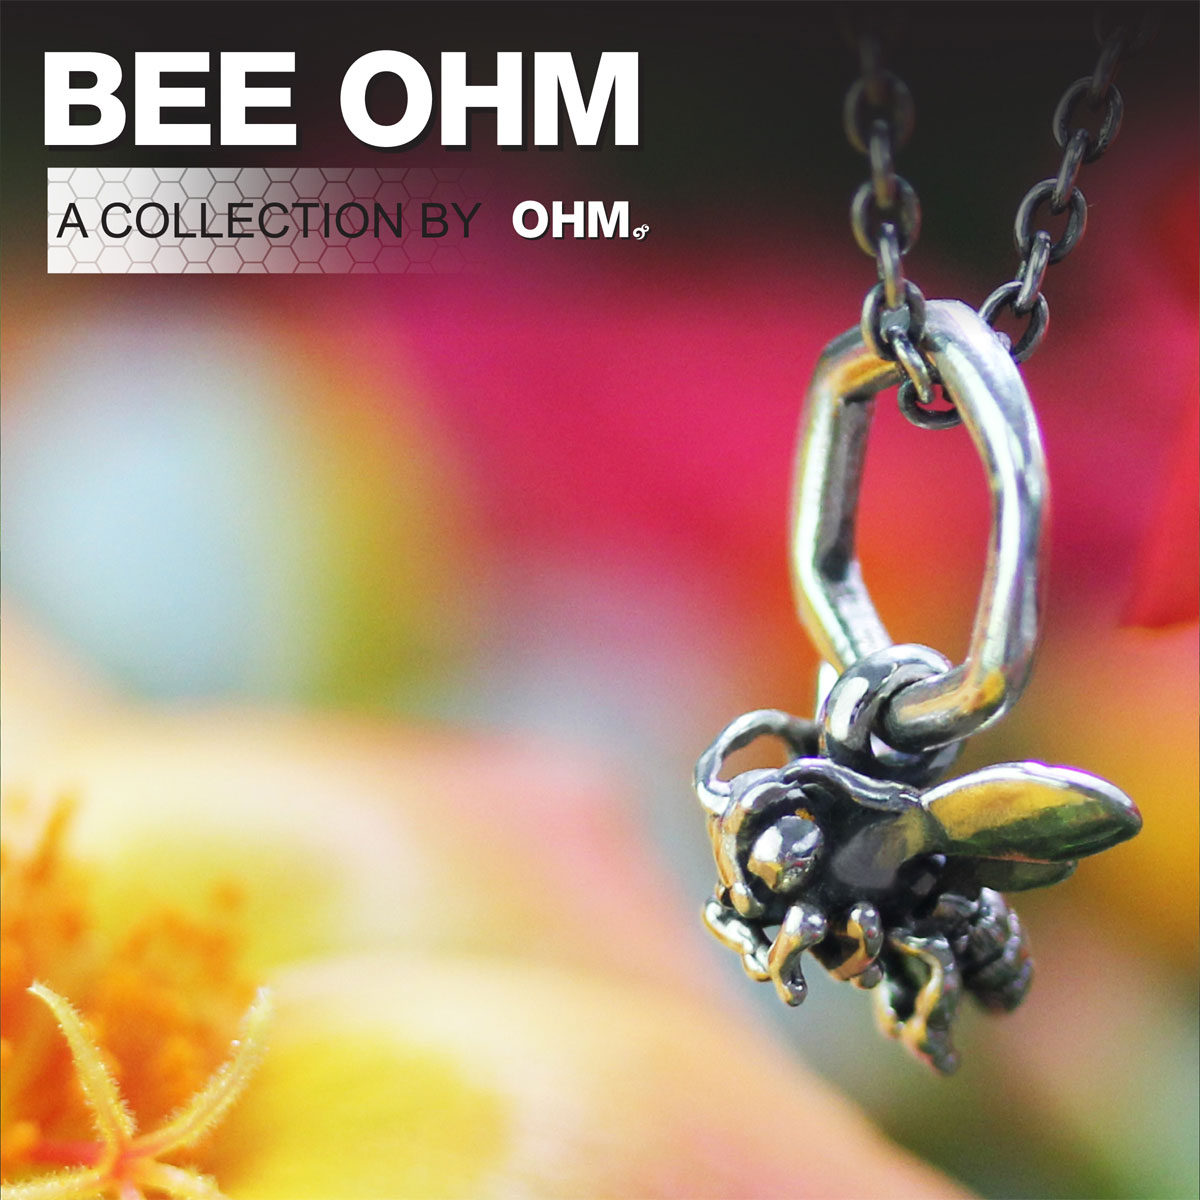 ohm-collections-bee-ohm